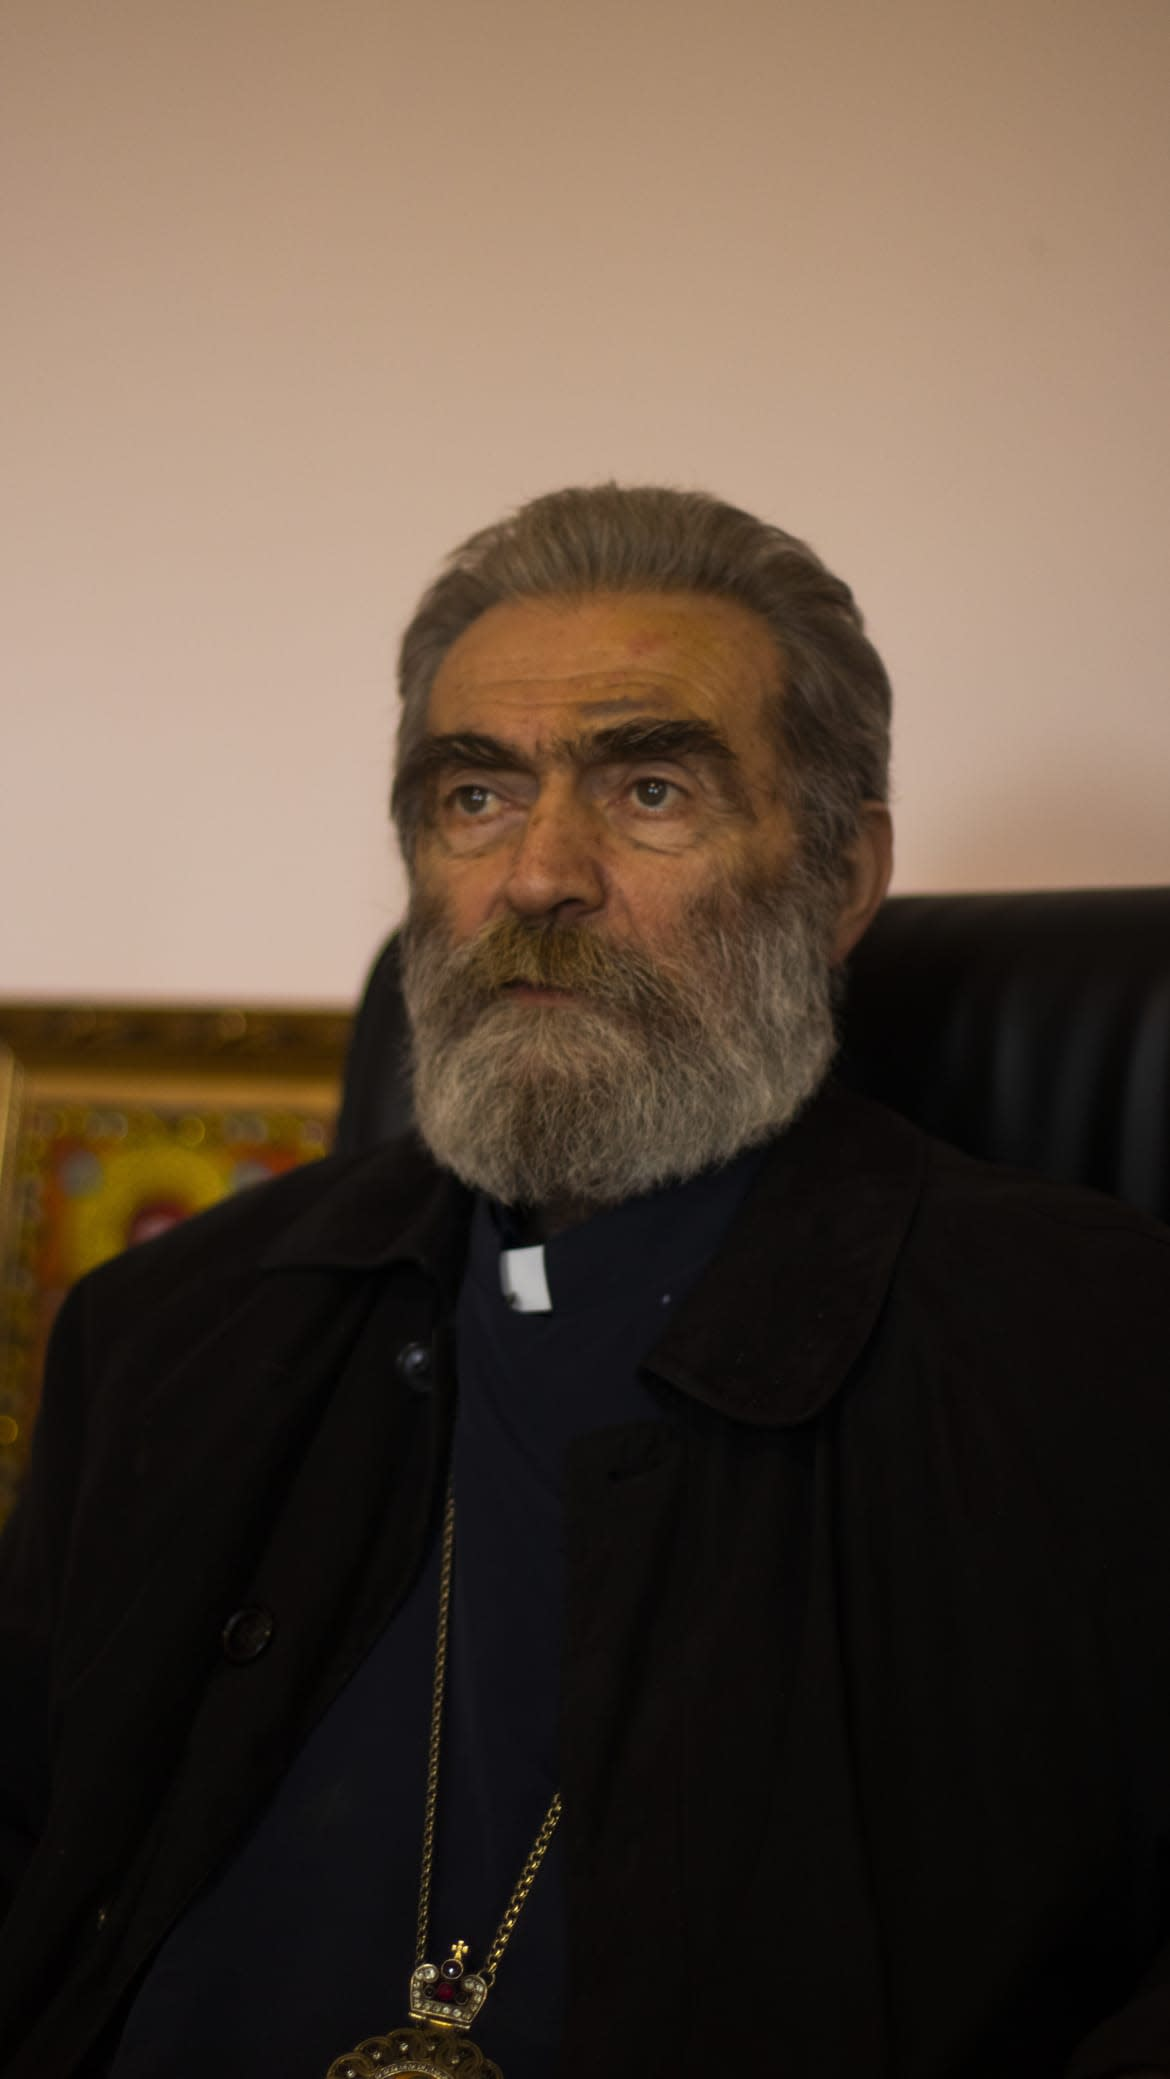 """<div class=""""inline-image__caption""""> <p>Archbishop Pargev Martirosyan travels around Nagorno-Karabakh to incite hope into soldiers and civilians. He says that hope is founded in people here, which makes them strong.</p> </div> <div class=""""inline-image__credit""""> Emil Filtenborg </div>"""